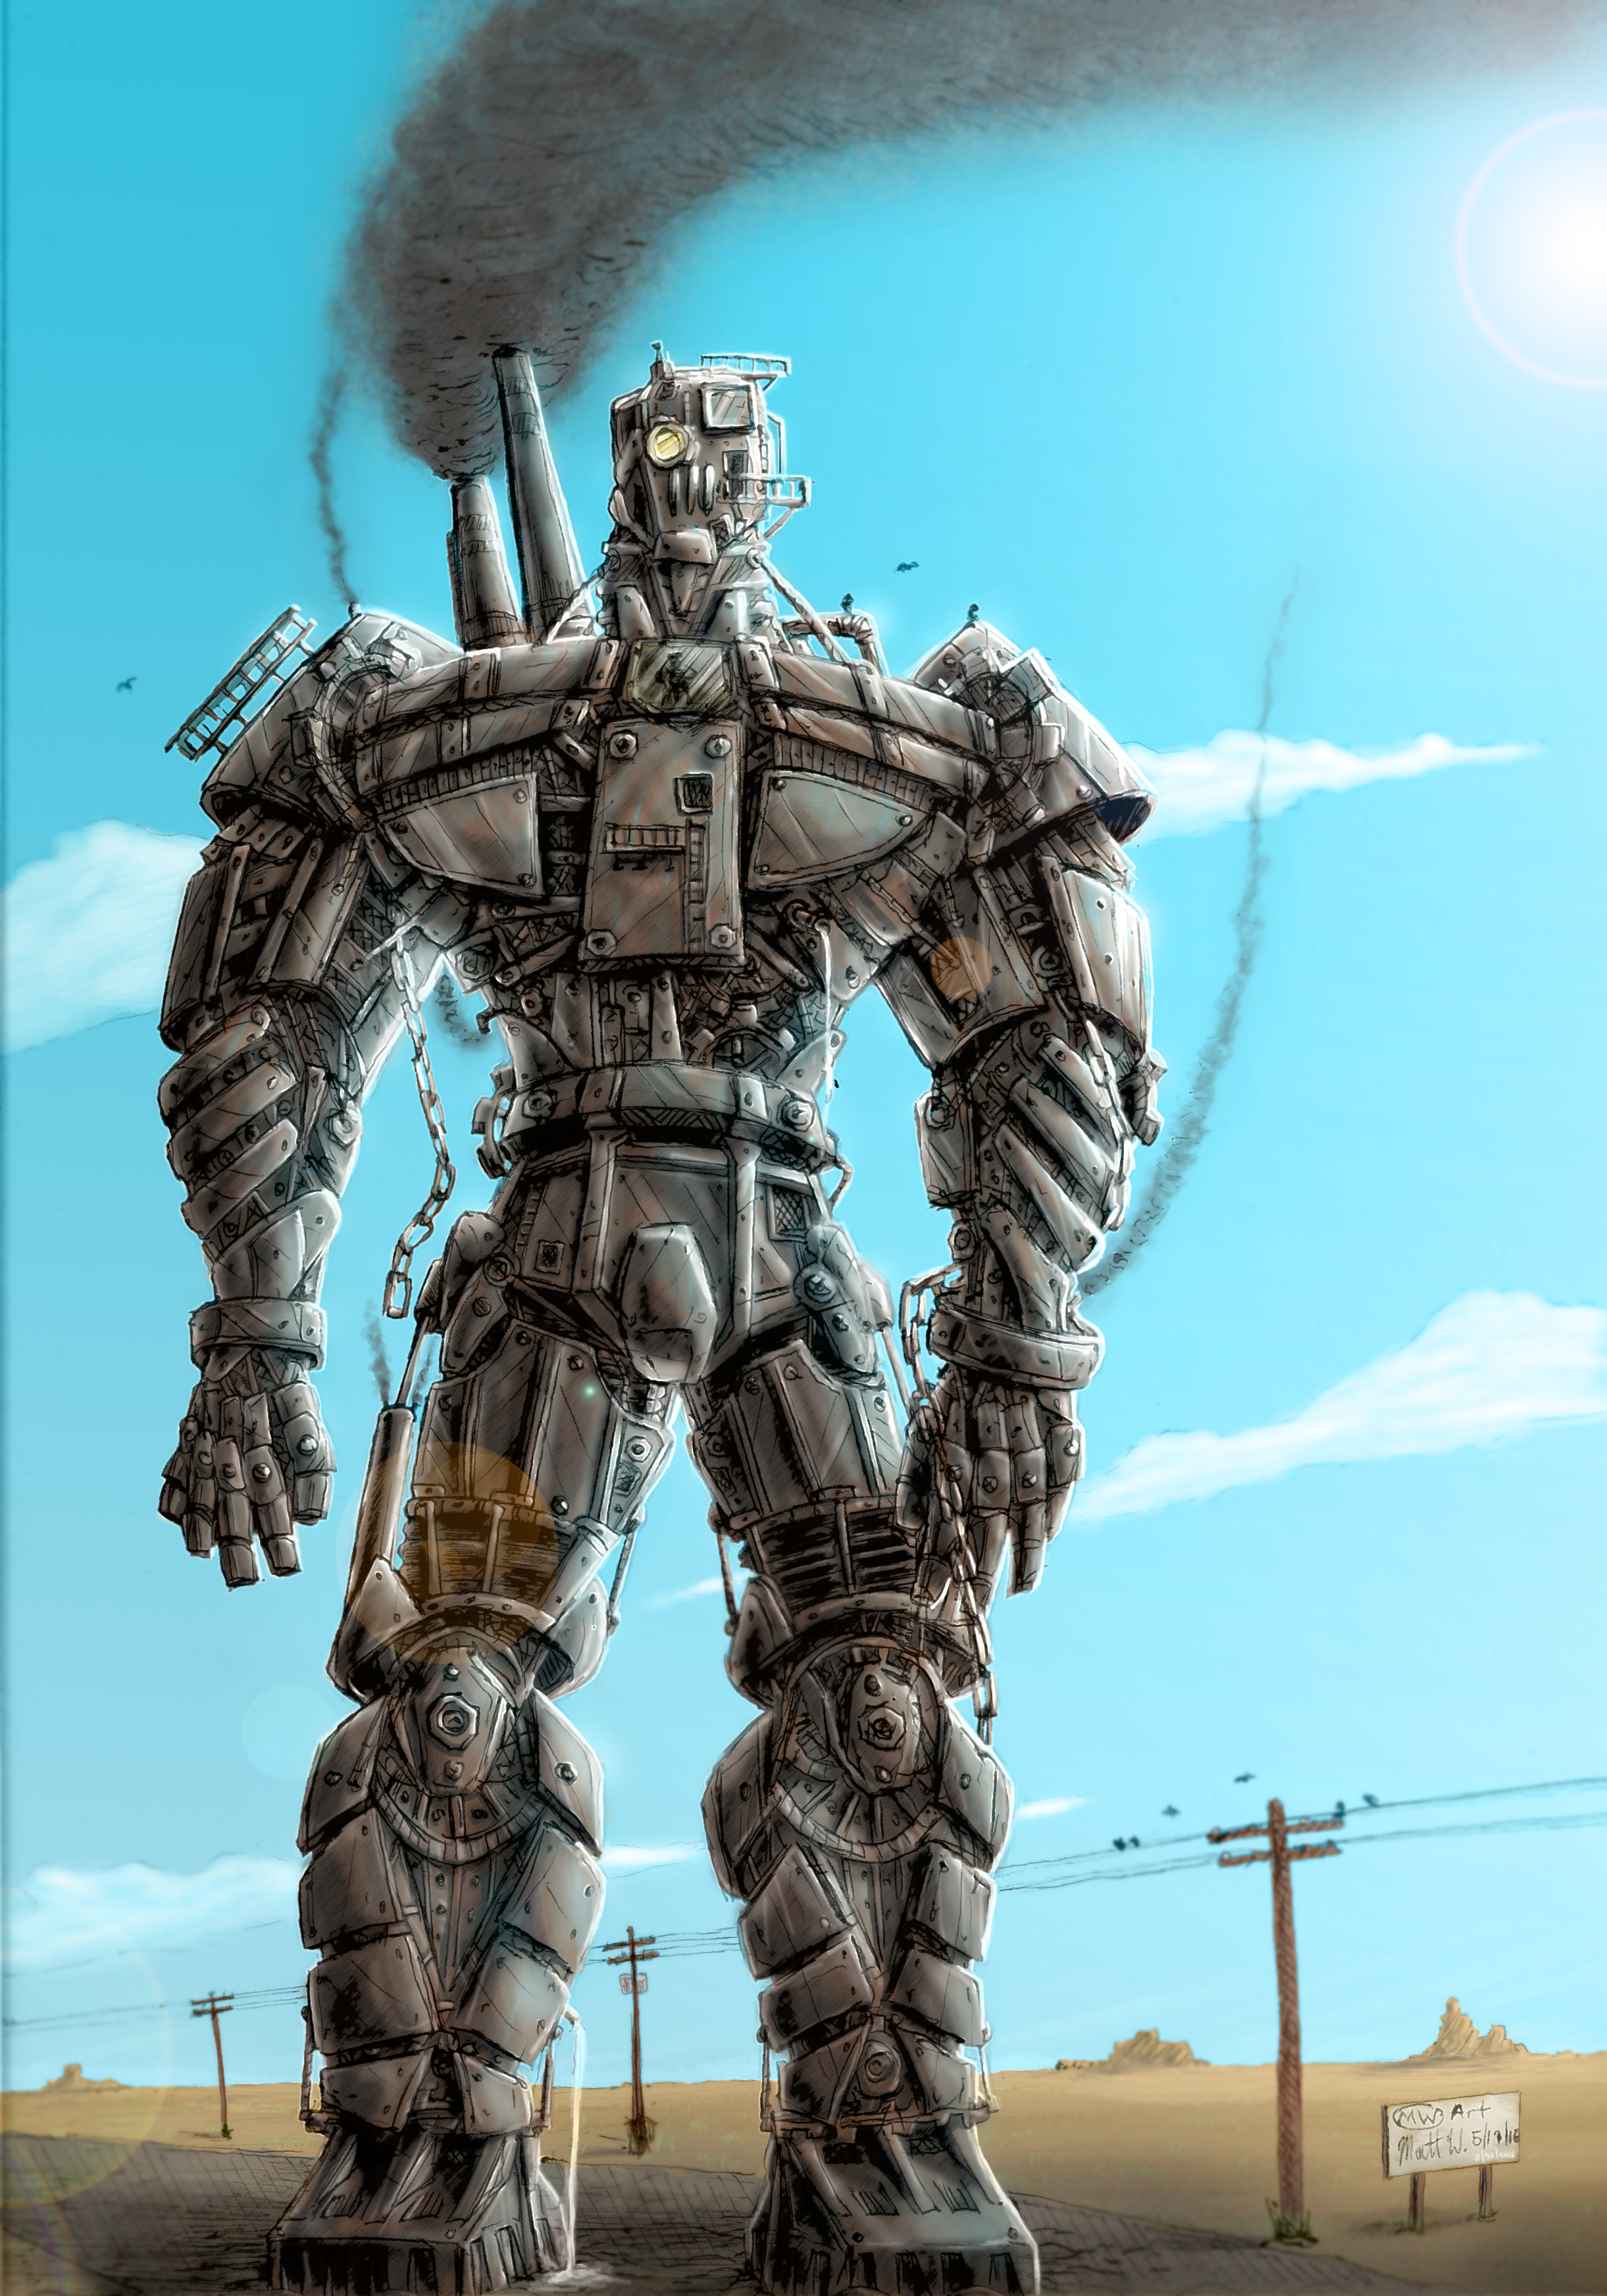 Steam-bot by MWArt on Newgrounds